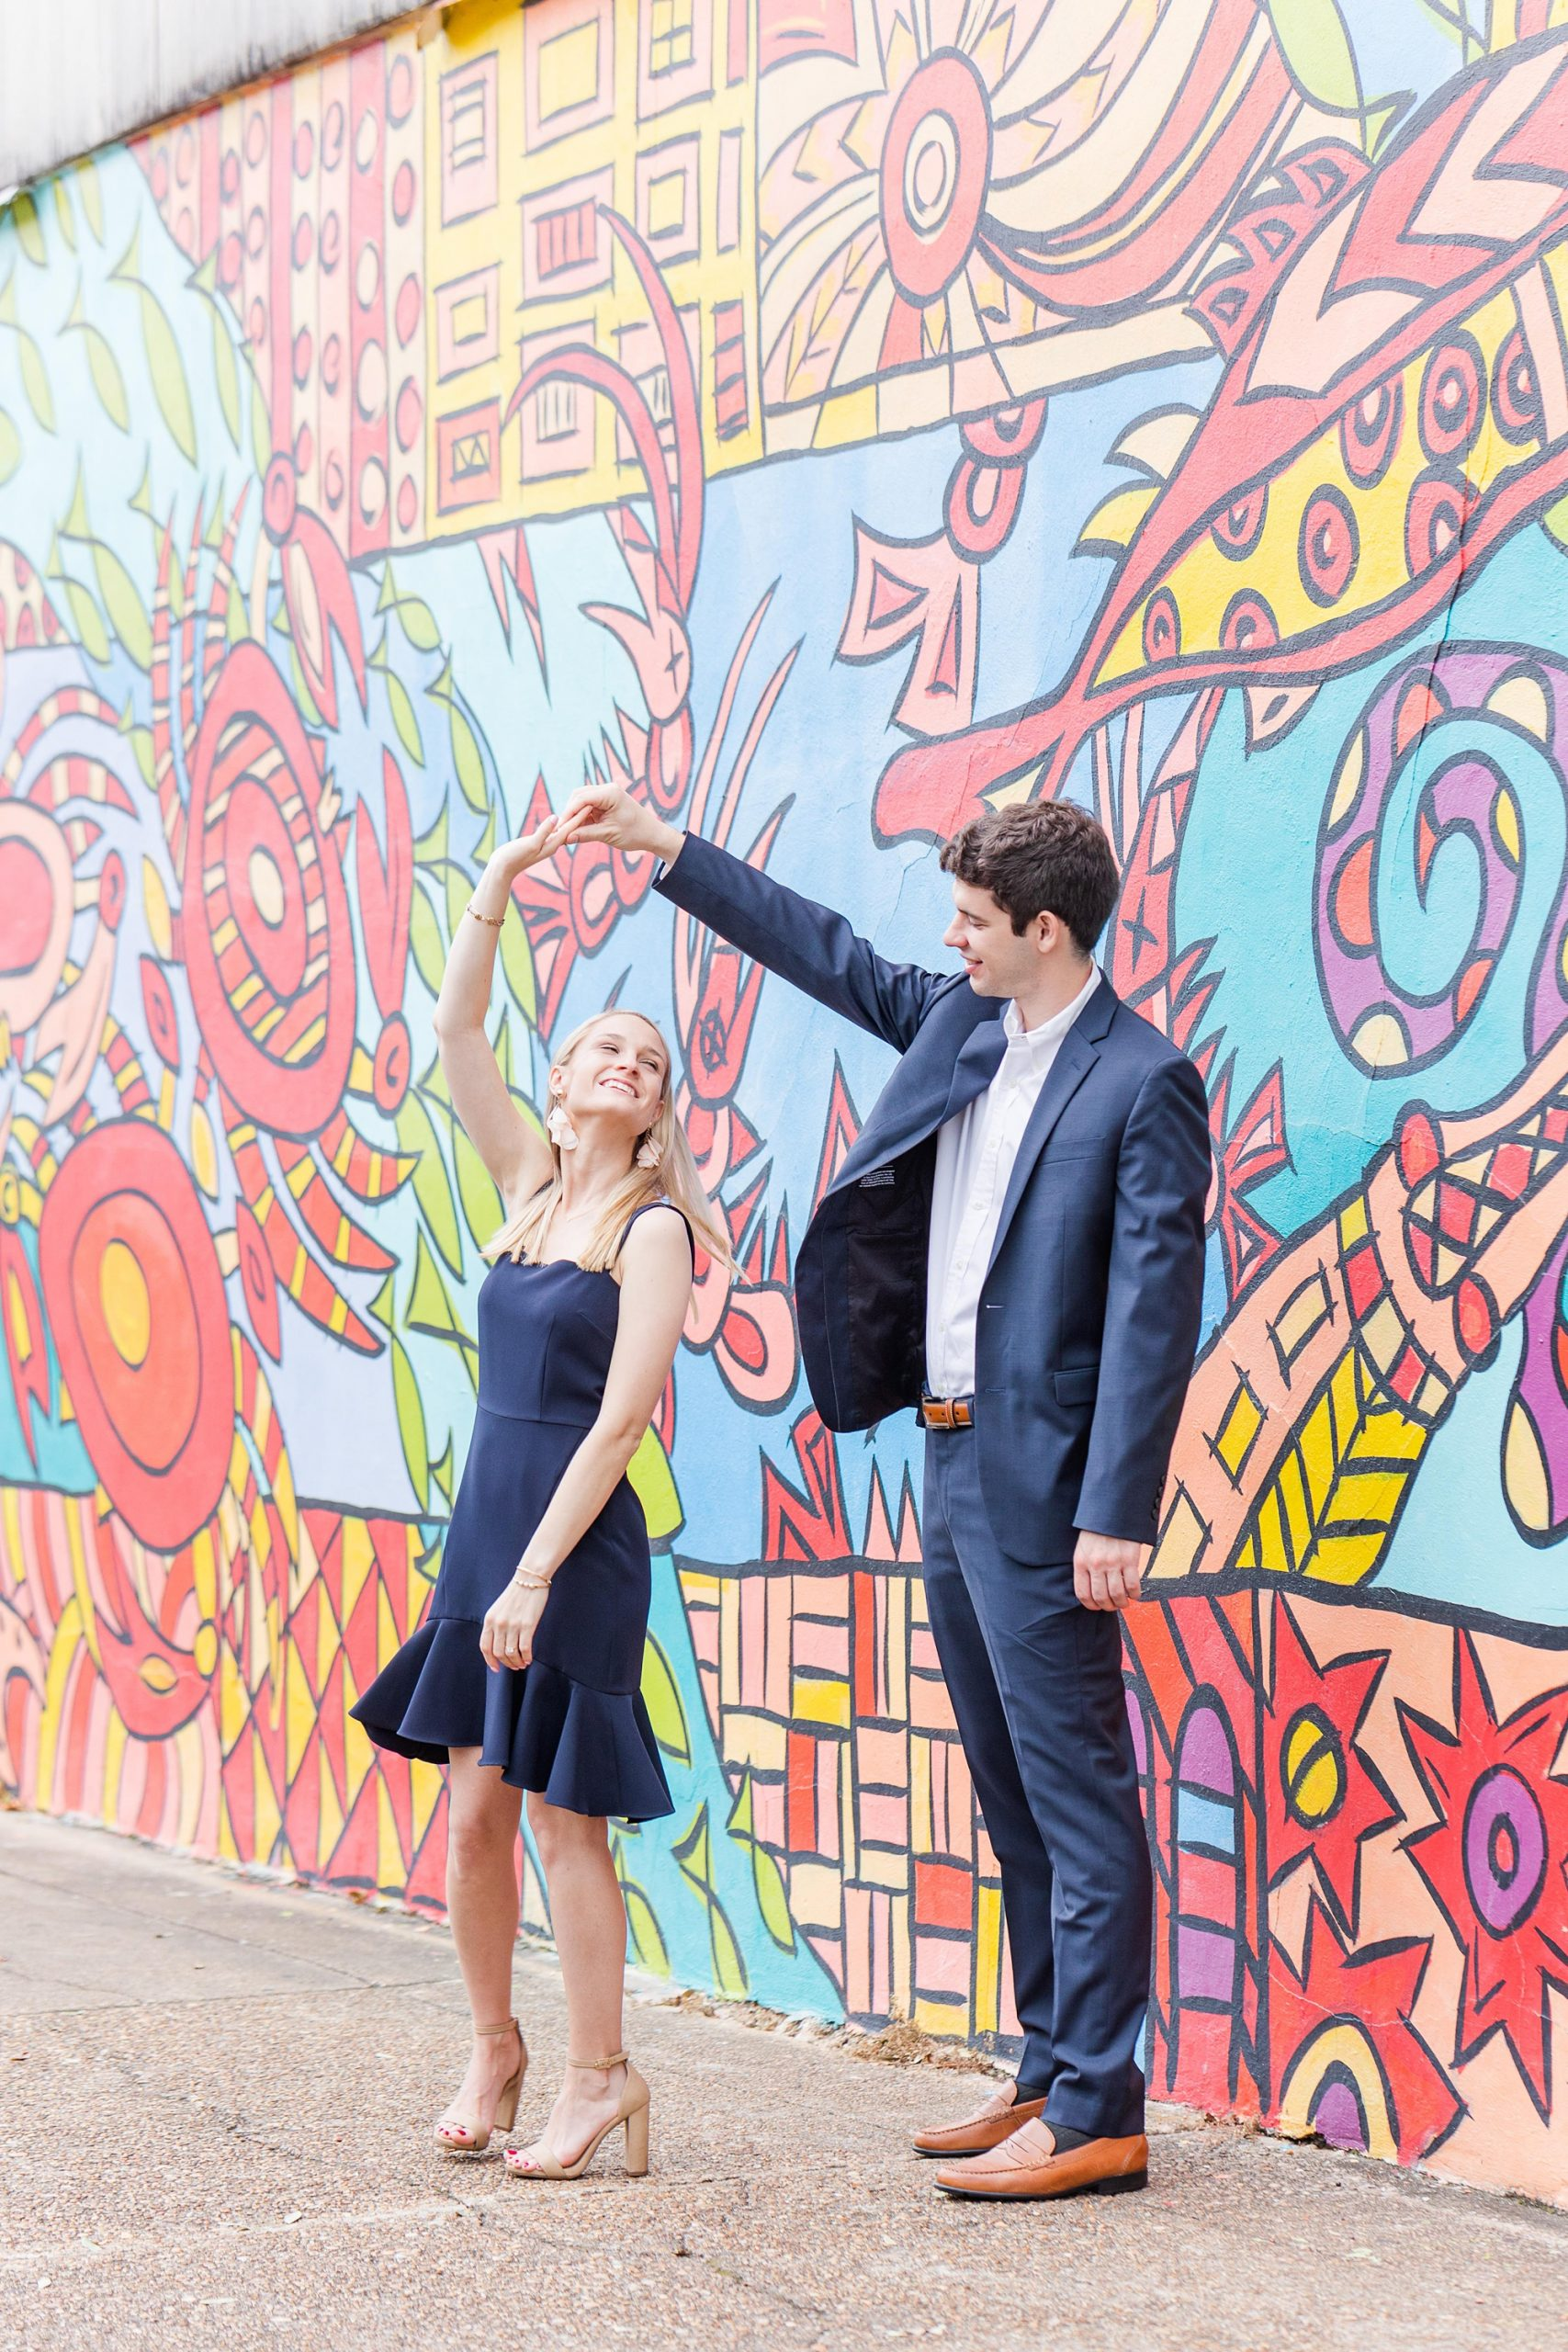 bride and groom dance in front of colorful mural